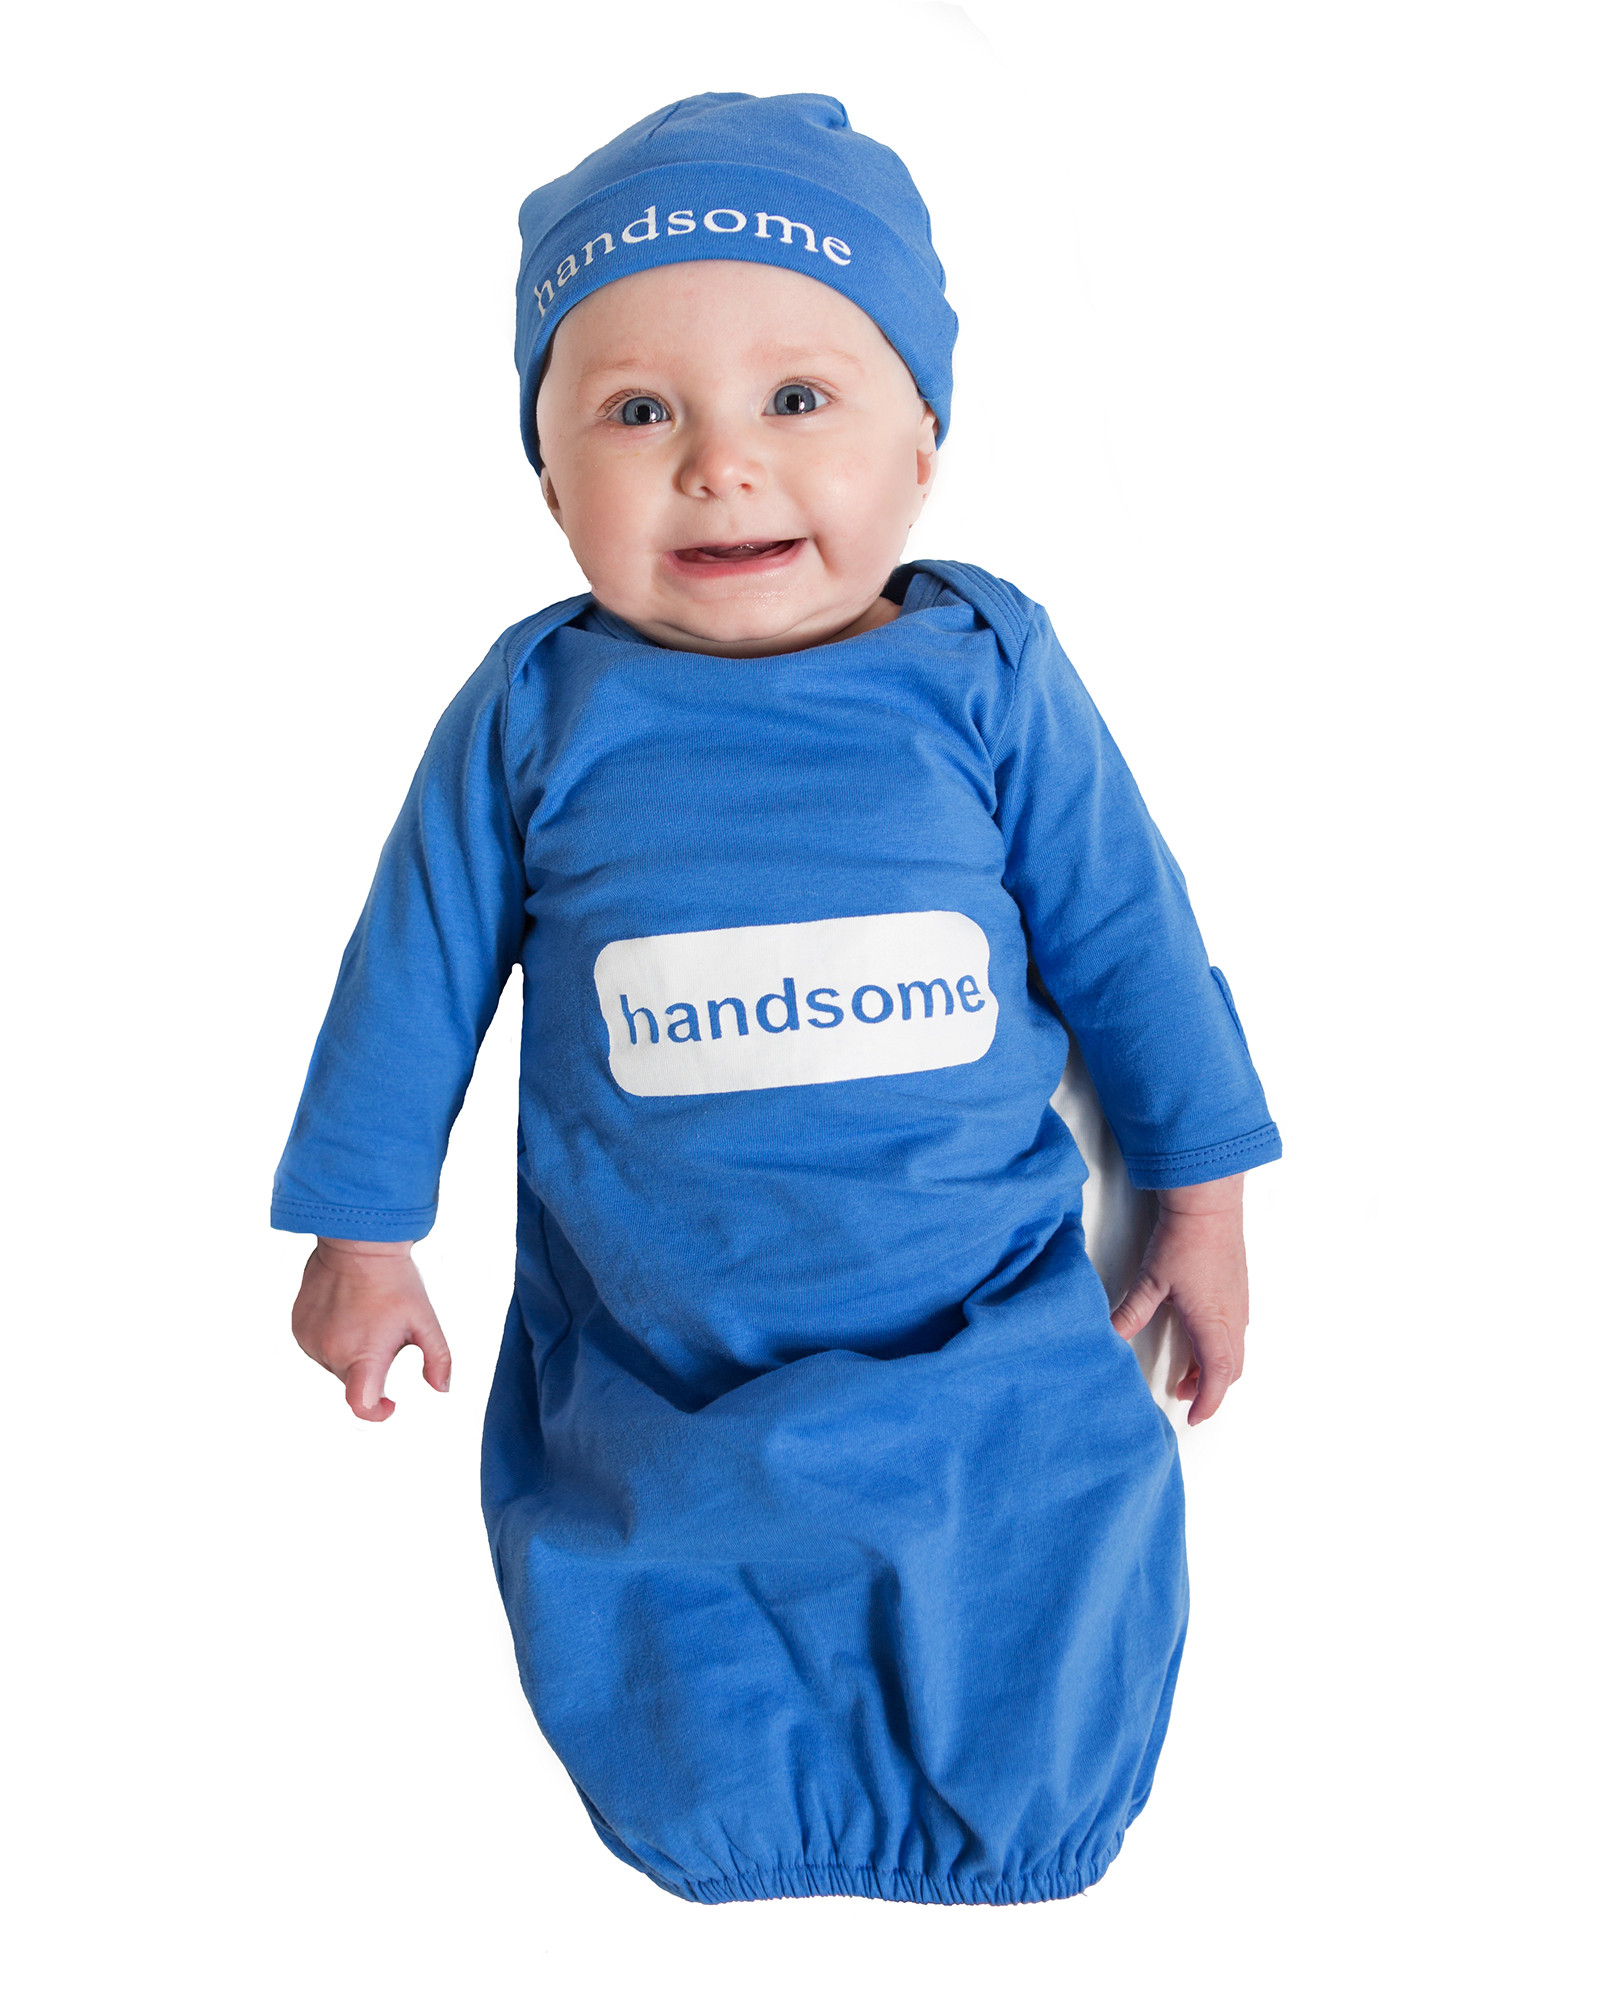 blue handsome baby romper and hat set